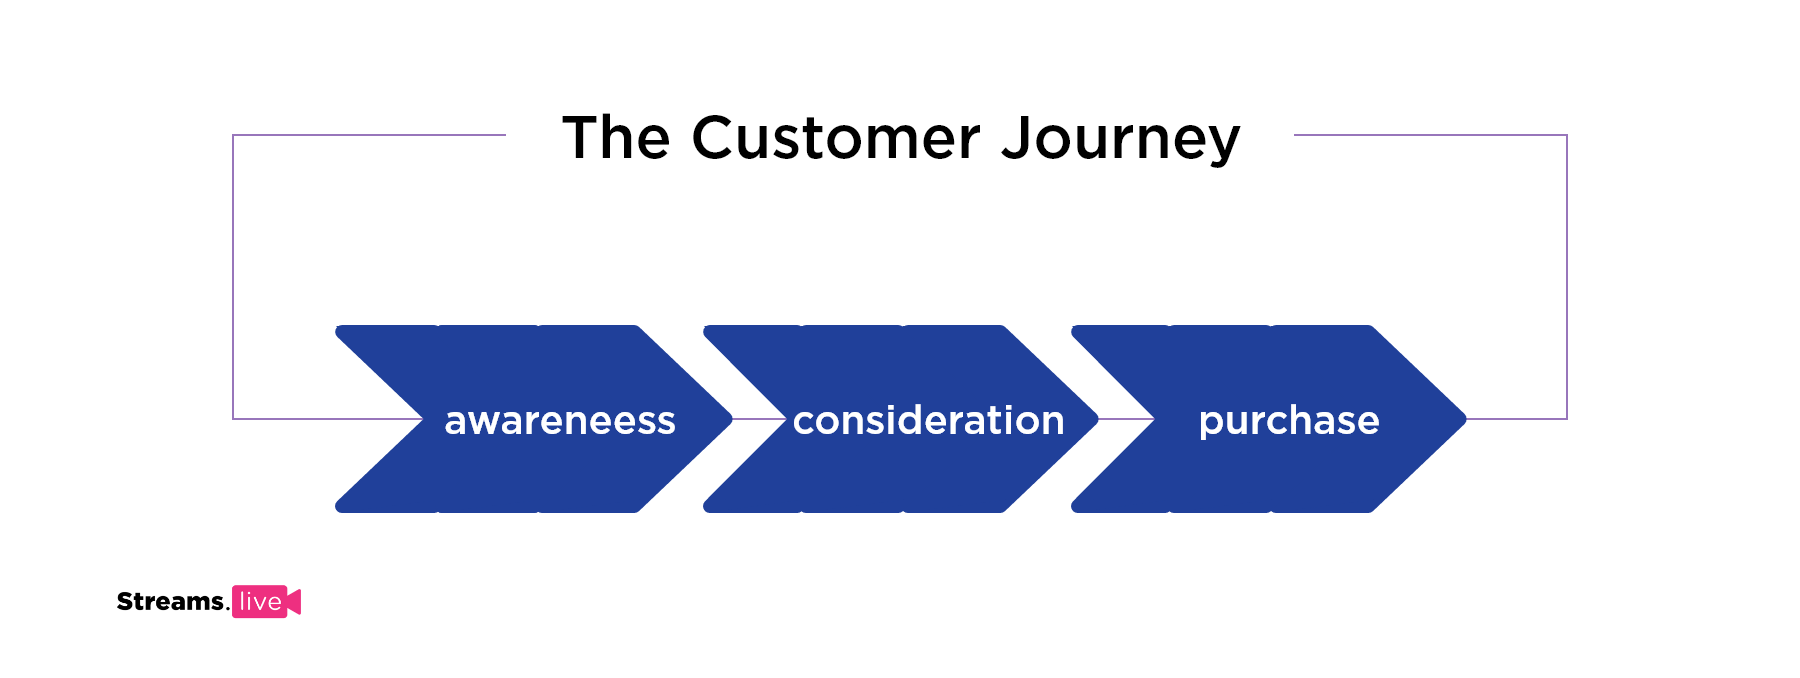 image showing the 3 stages of a purchasing journey